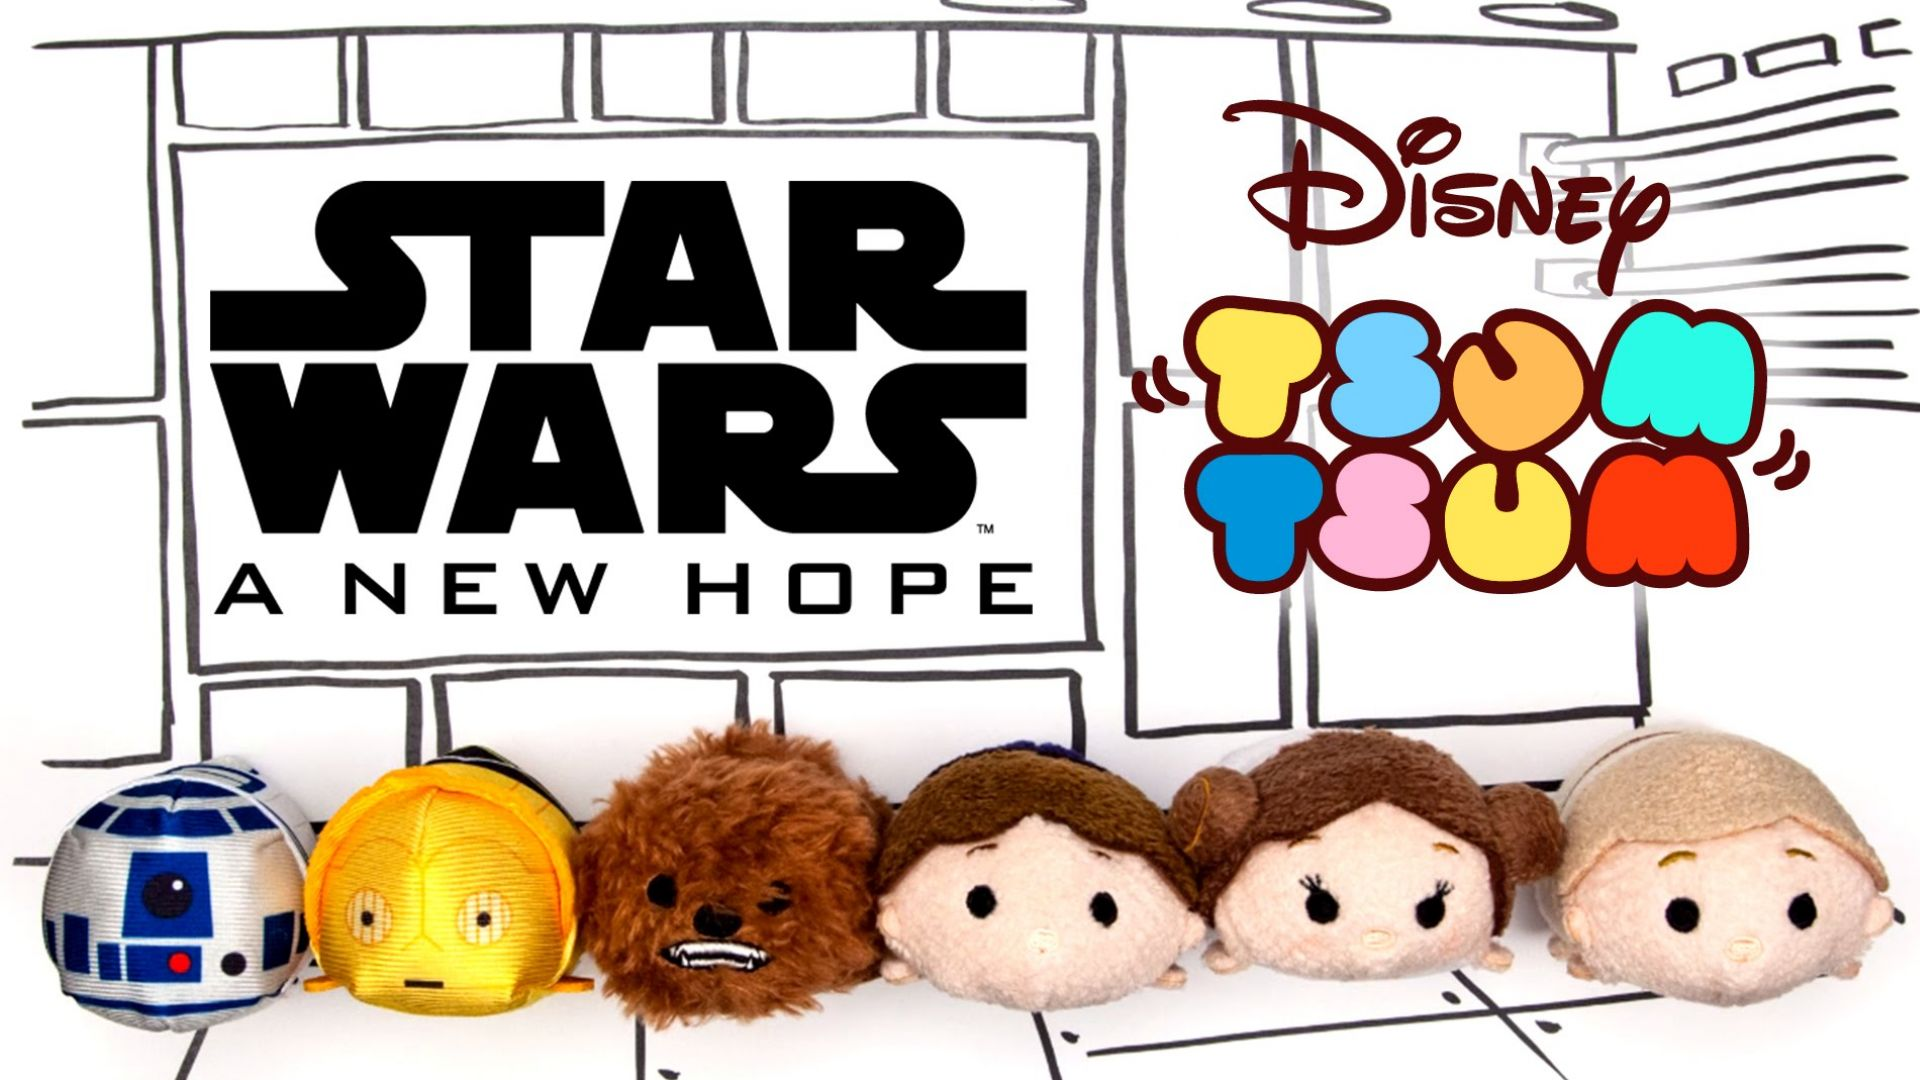 Star Wars: A New Hope As Told By Tsum Tsum Oh My Disney